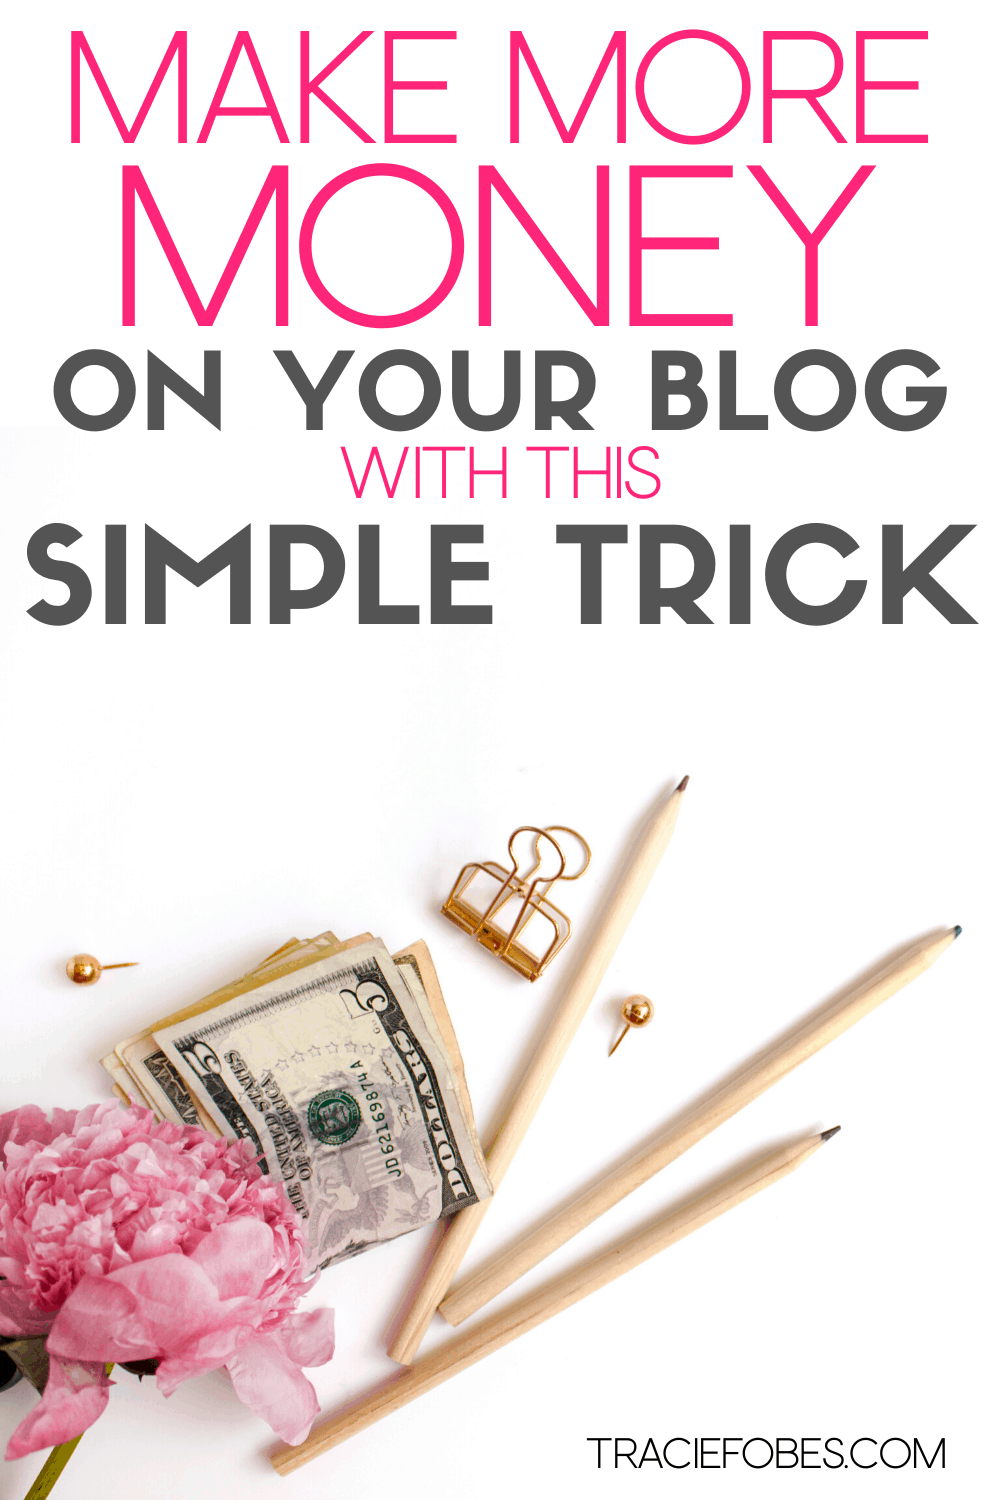 Pencils, money to help with affiliate marketing